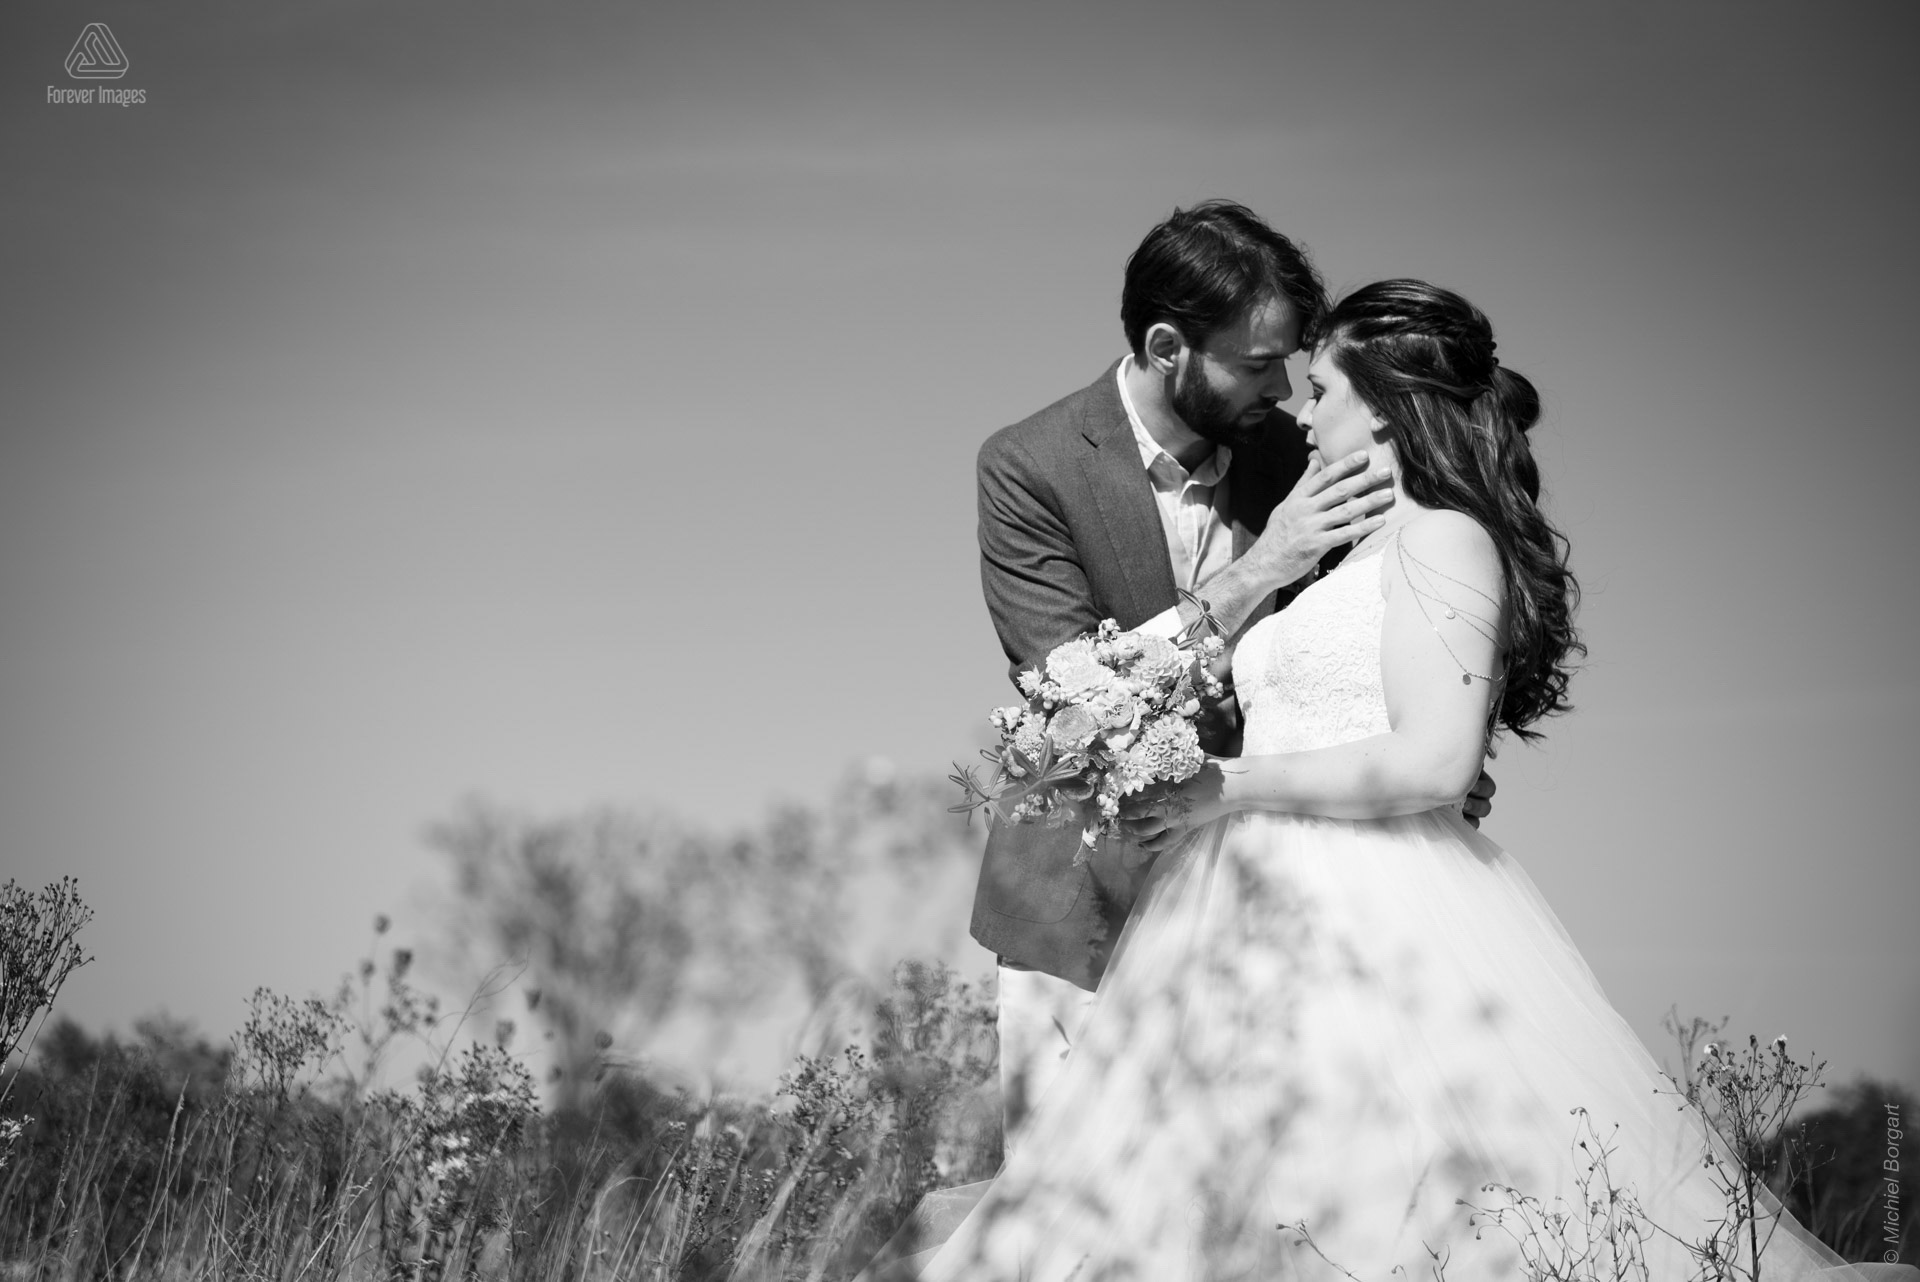 Bridal photo black and white wedding couple romantic intimate together outside | Wedding Photographer Michiel Borgart - Forever Images.